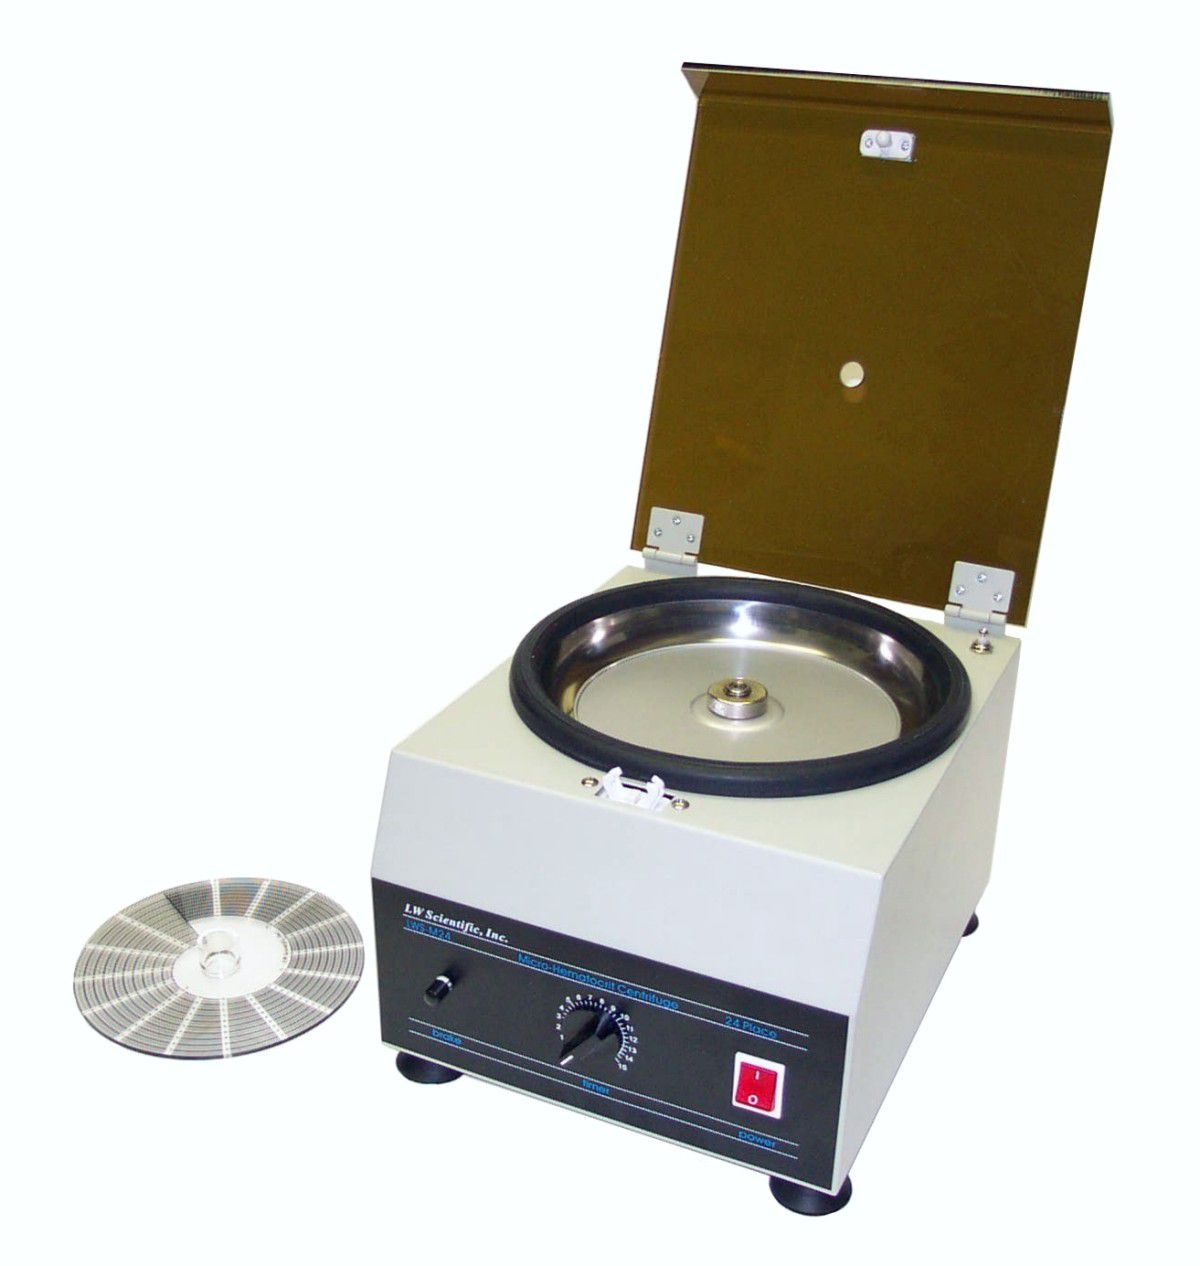 Lw Scientific Combo V24 Centrifuge Box, Each - Model CMC-24AV-1501